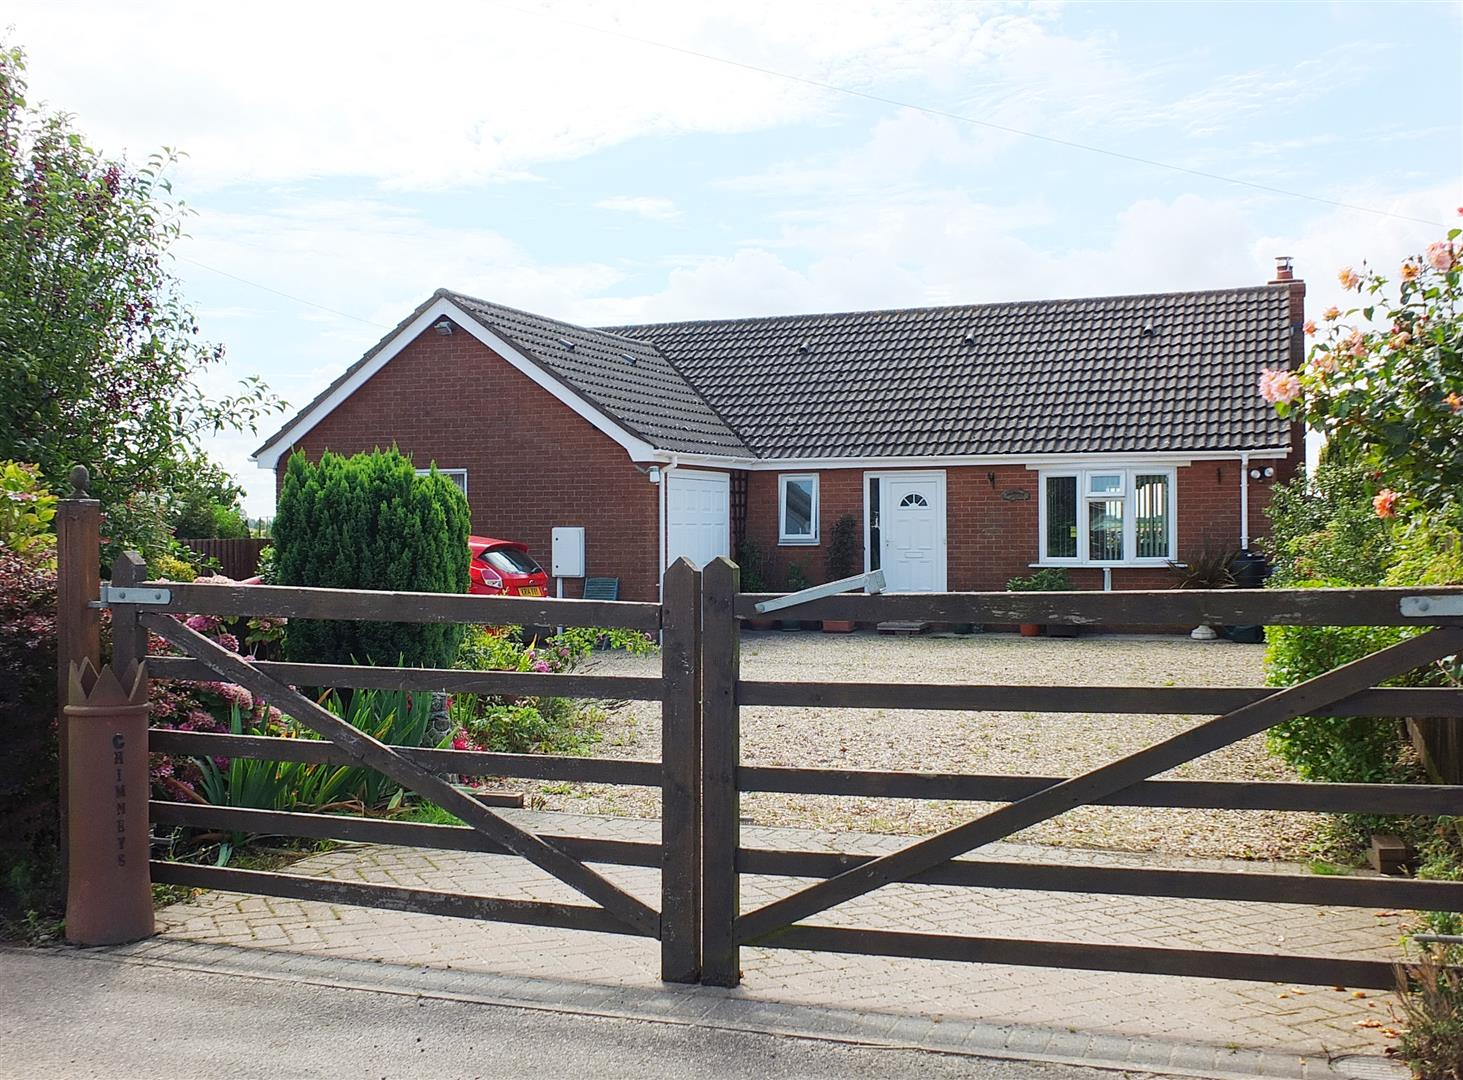 3 bed detached bungalow for sale in Gedney Drove End Spalding, PE12 9PD, PE12